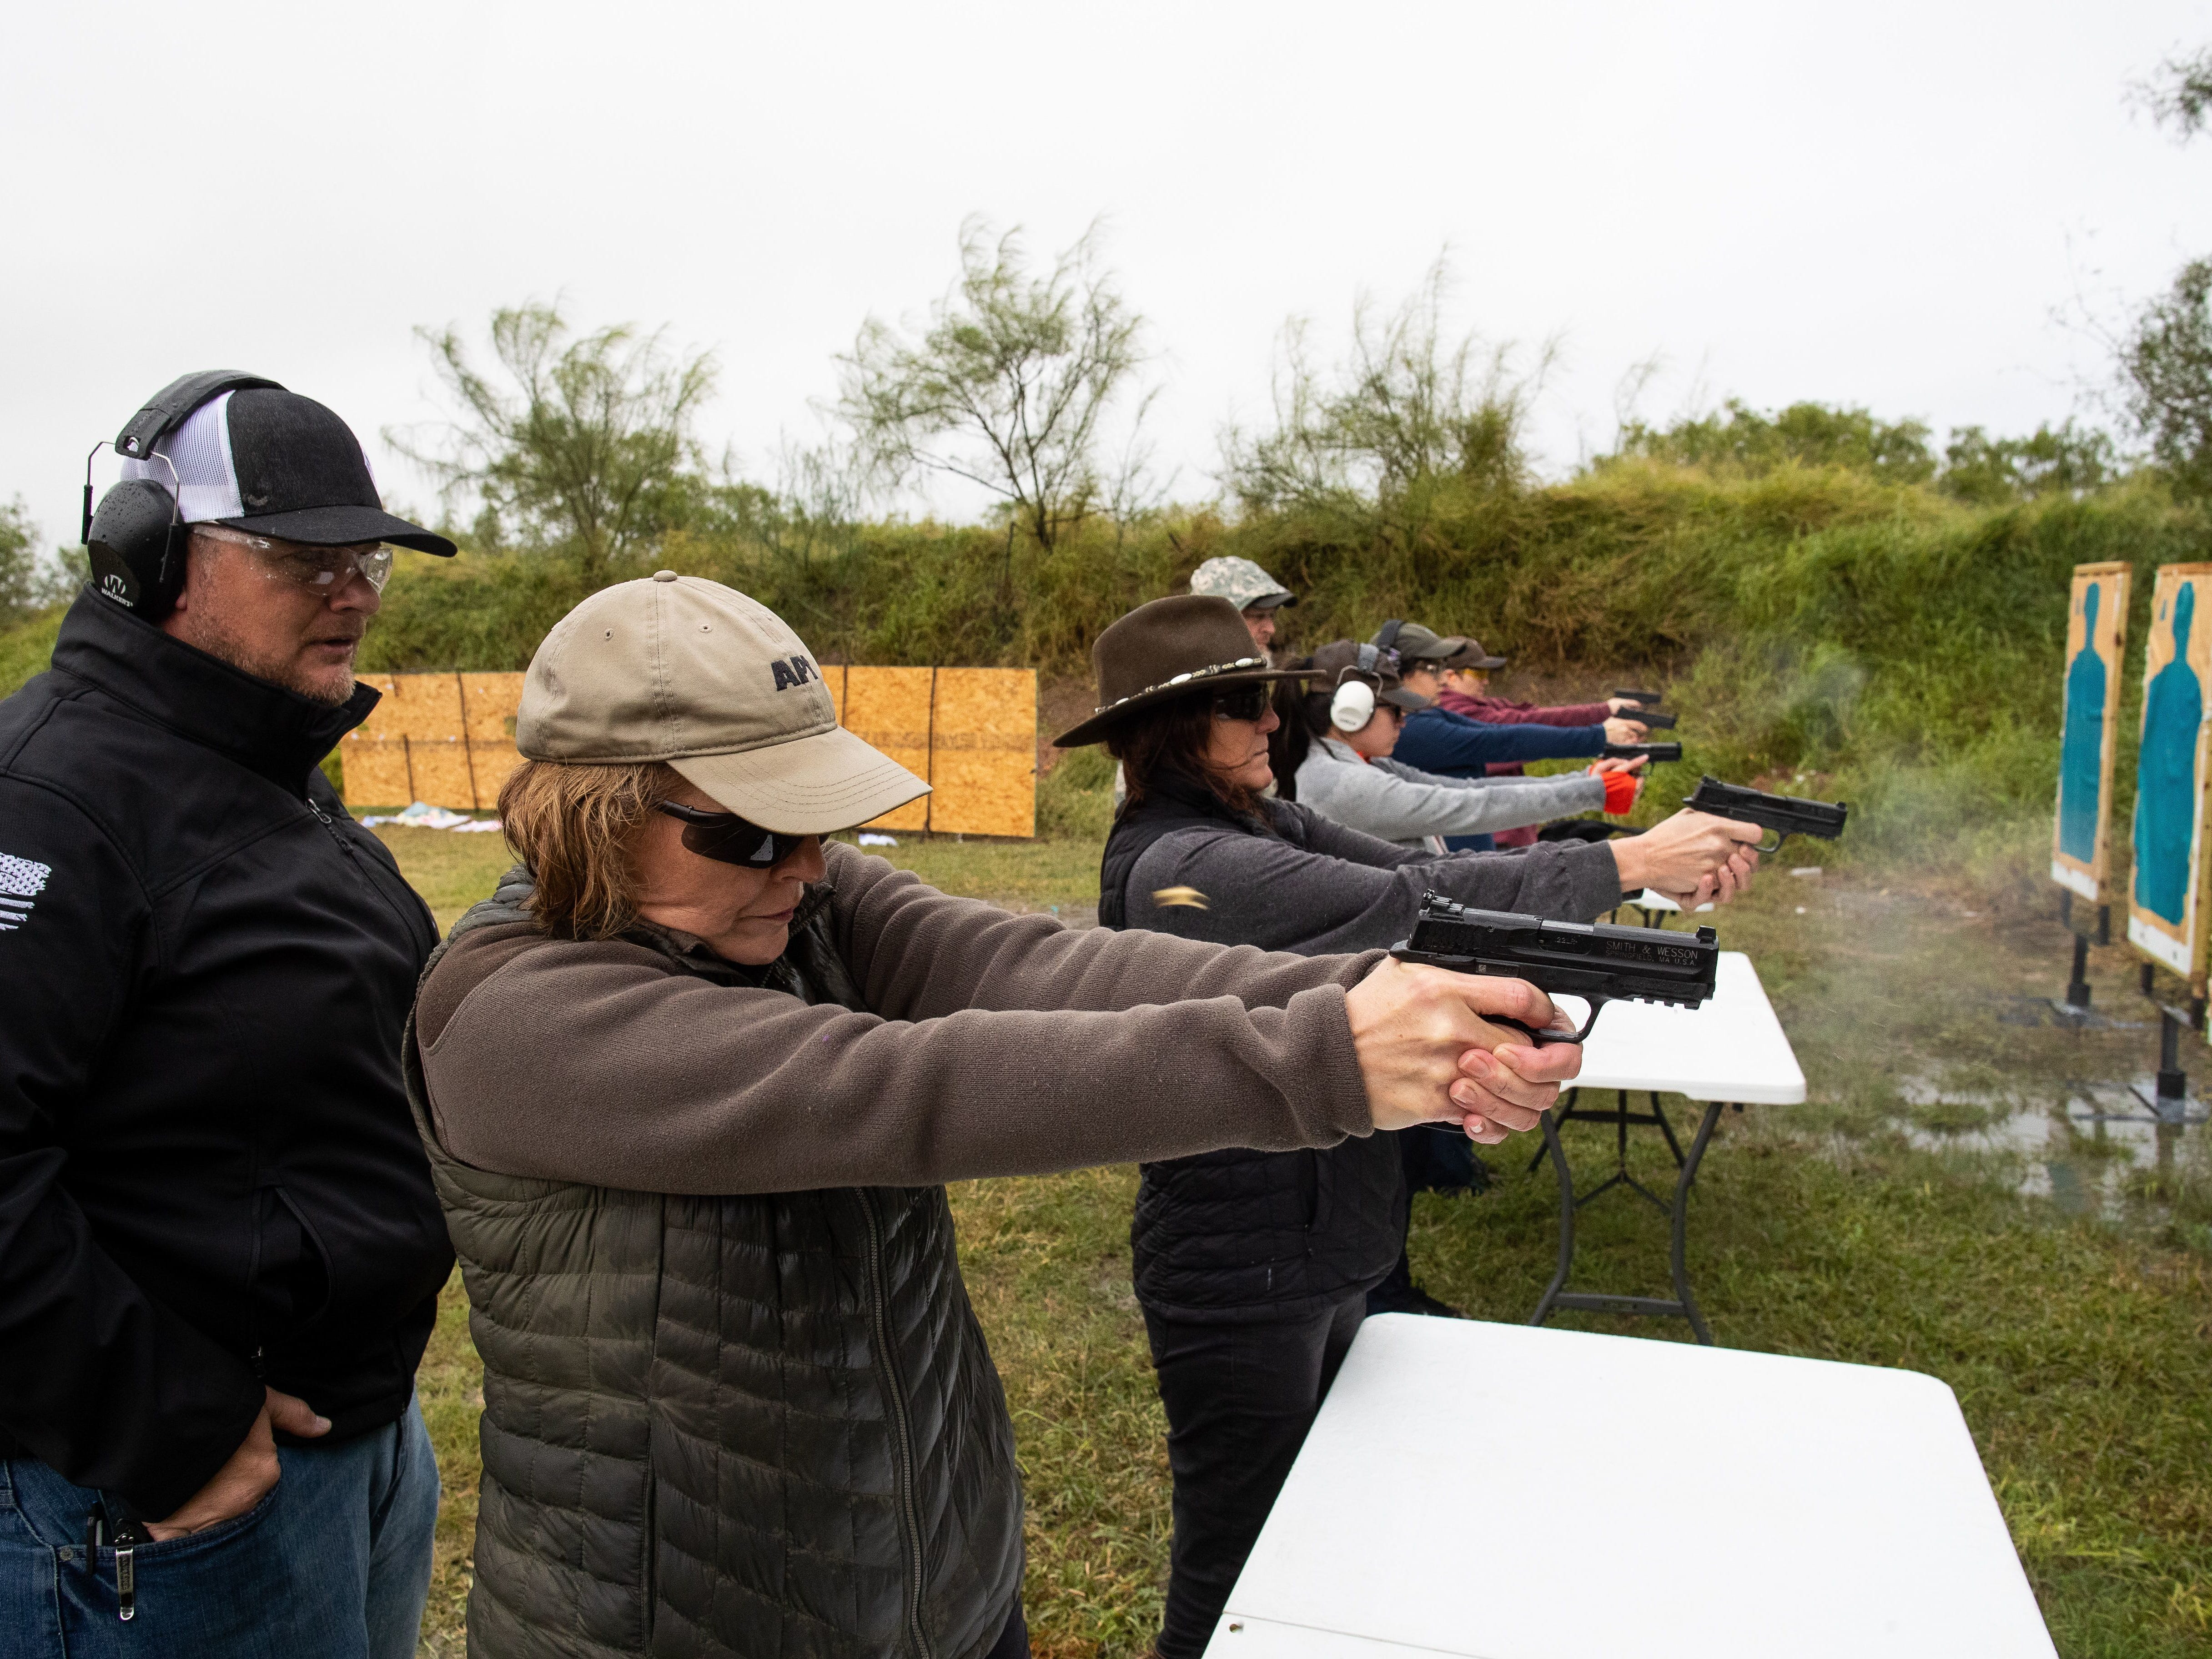 Judge Susan Barclay stands next to the 347th District Judge Missy Medary as they take a license to carry class along with other judges and courthouse workers at Starry Shooting Range in 2018.